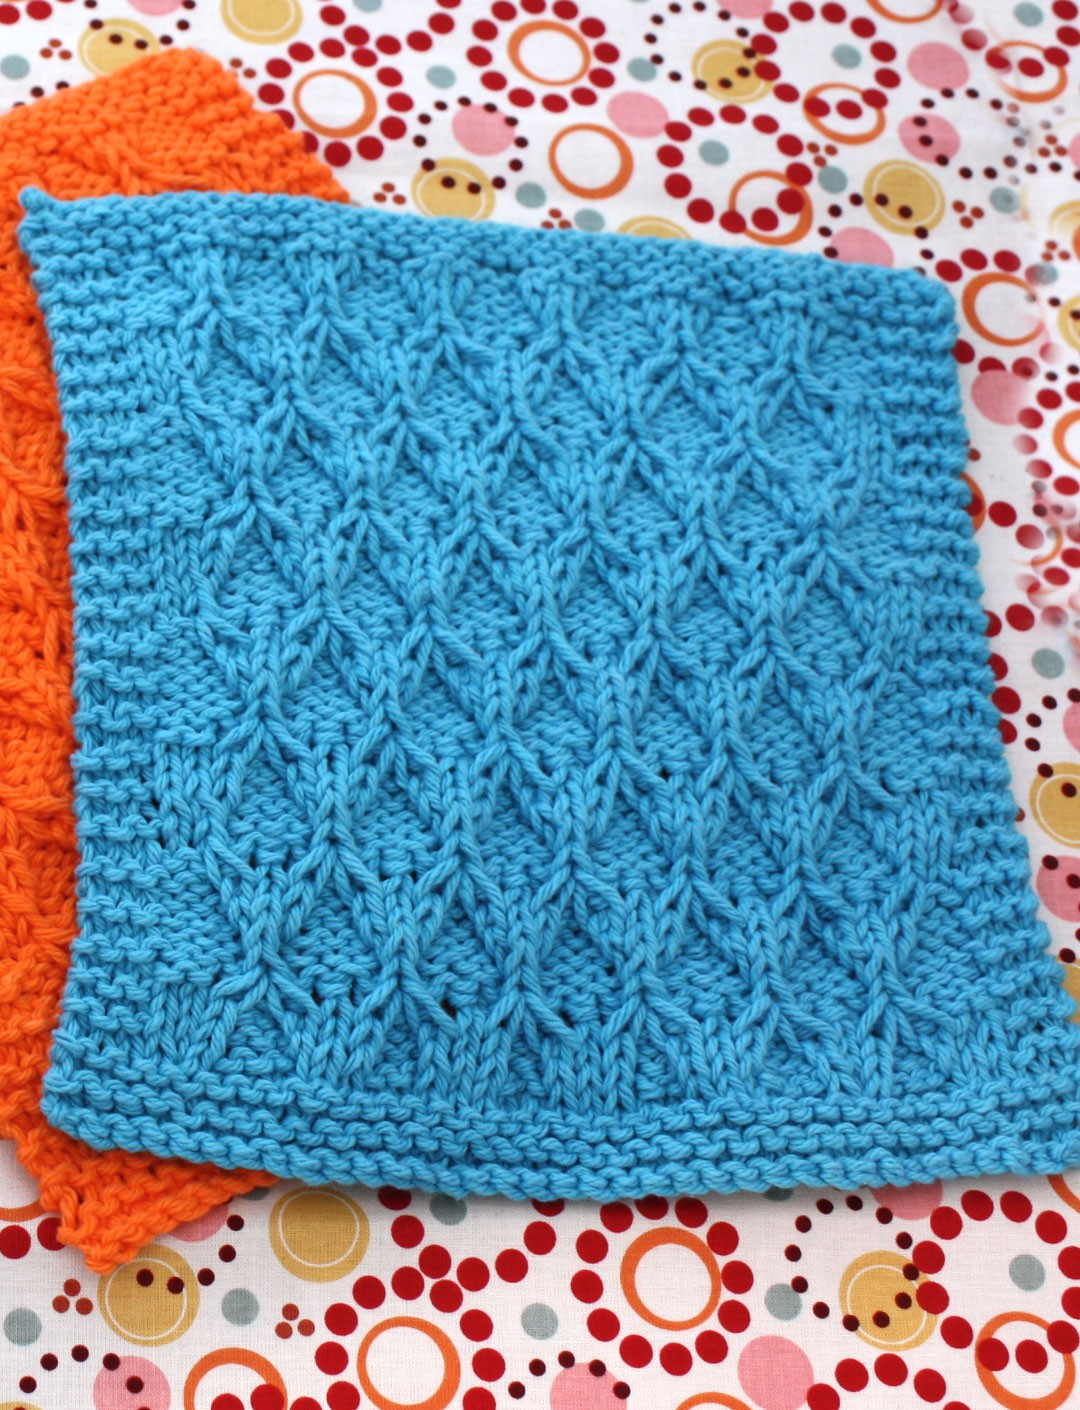 Honeycomb Knitting Pattern : Lily Honeycomb Check Dishcloth, Knit Pattern Yarnspirations